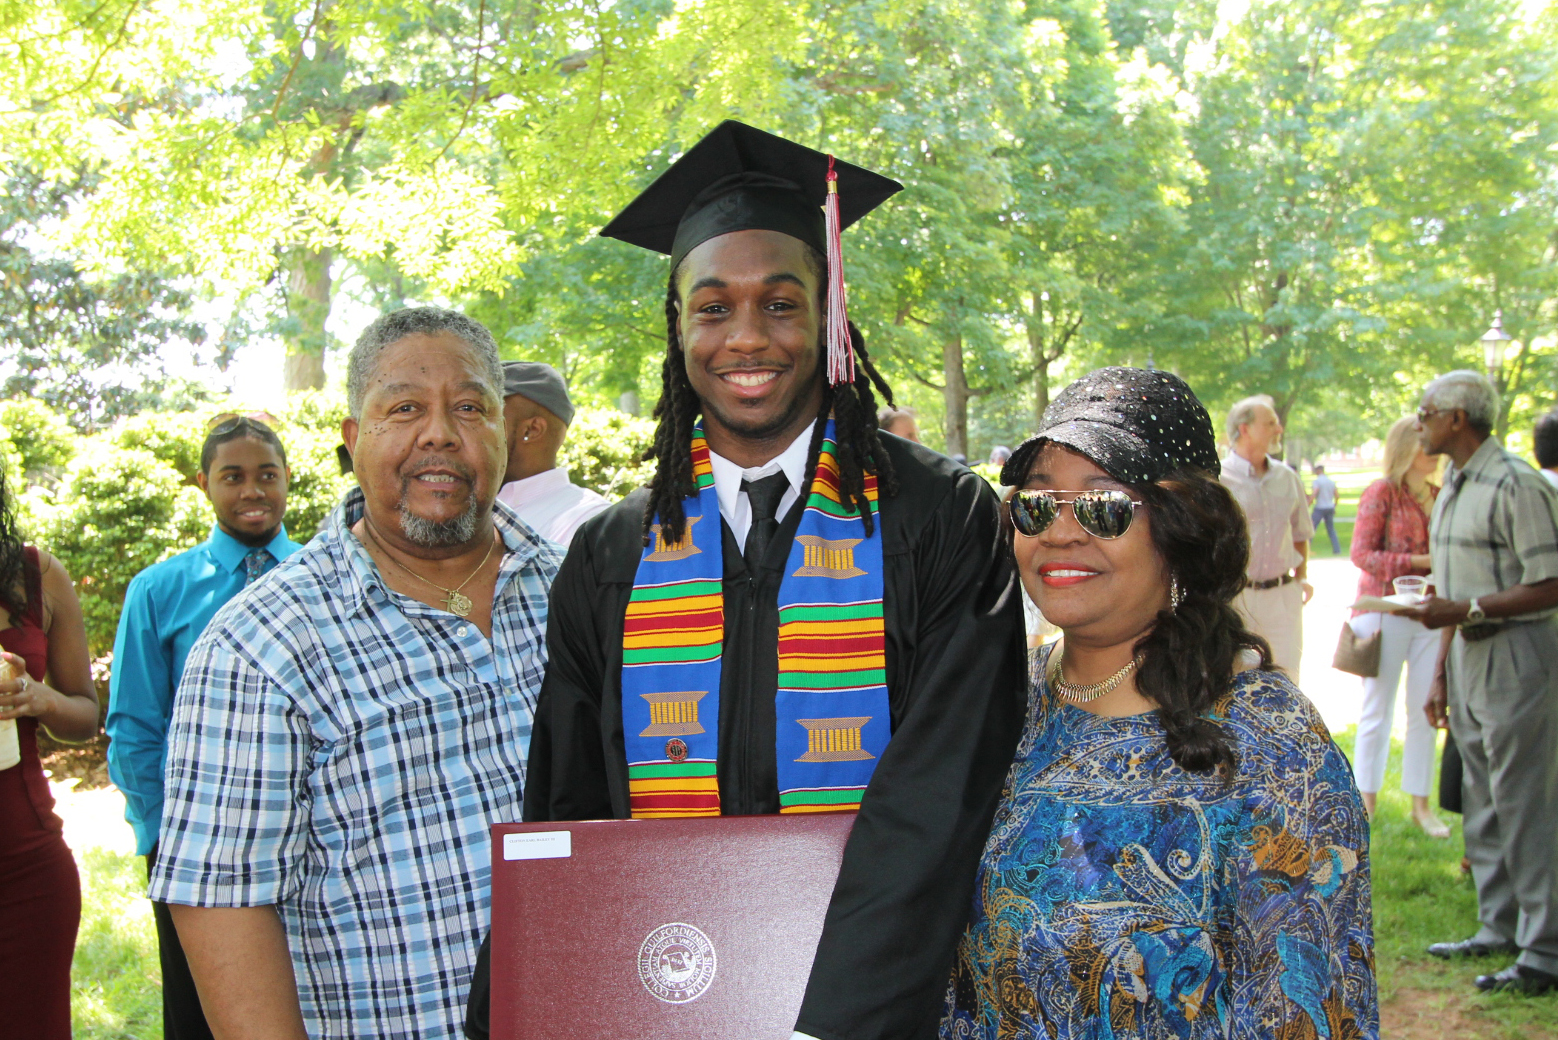 Proud parents with their graduate.